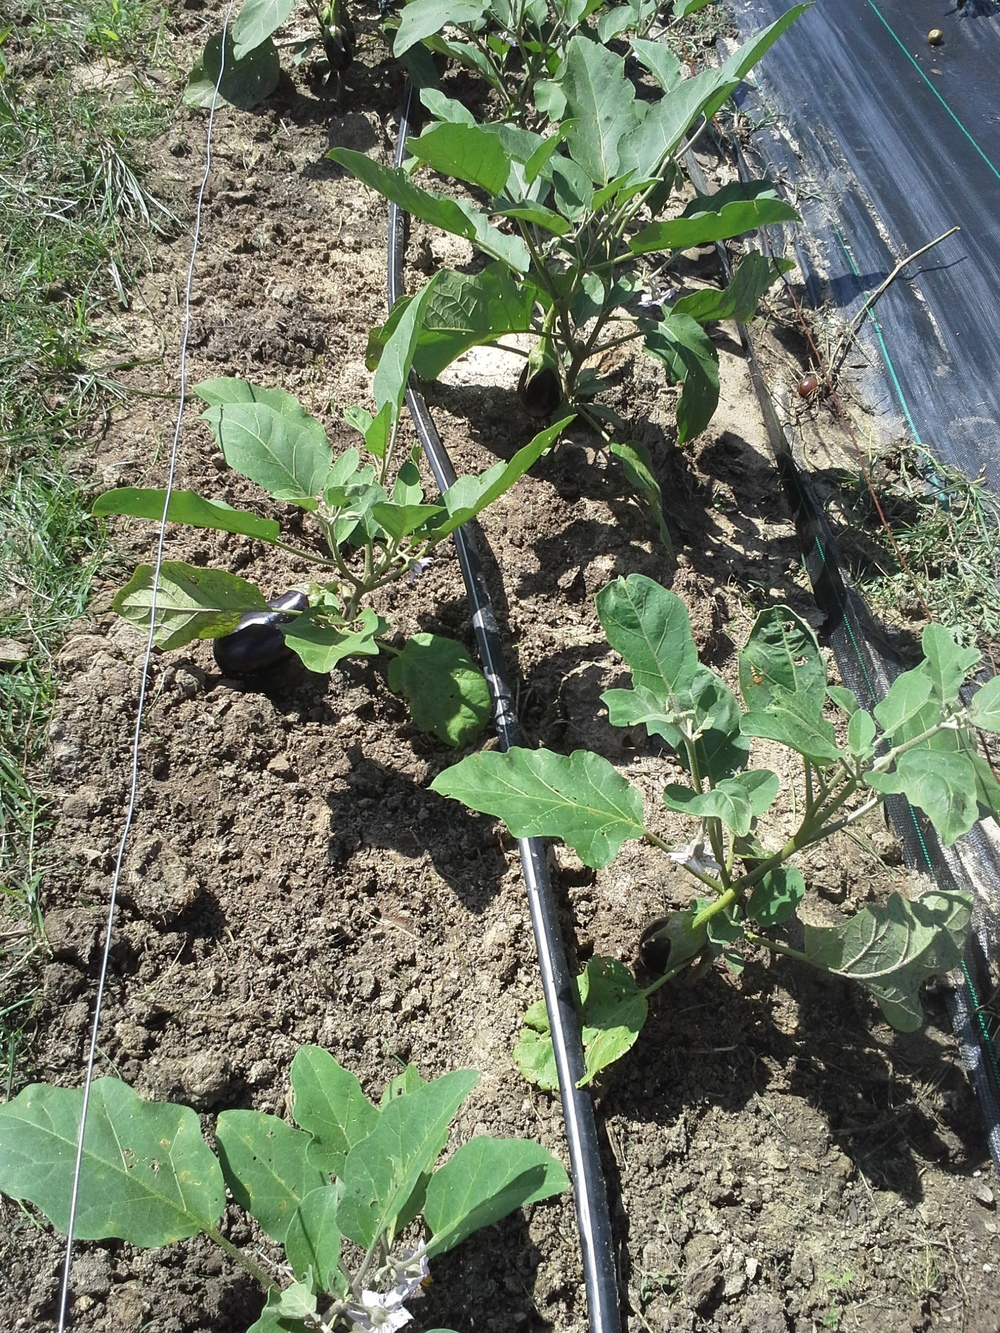 You can see the remains of Bahia and Johnson grasses tossed from the freshly-weeded eggplants.